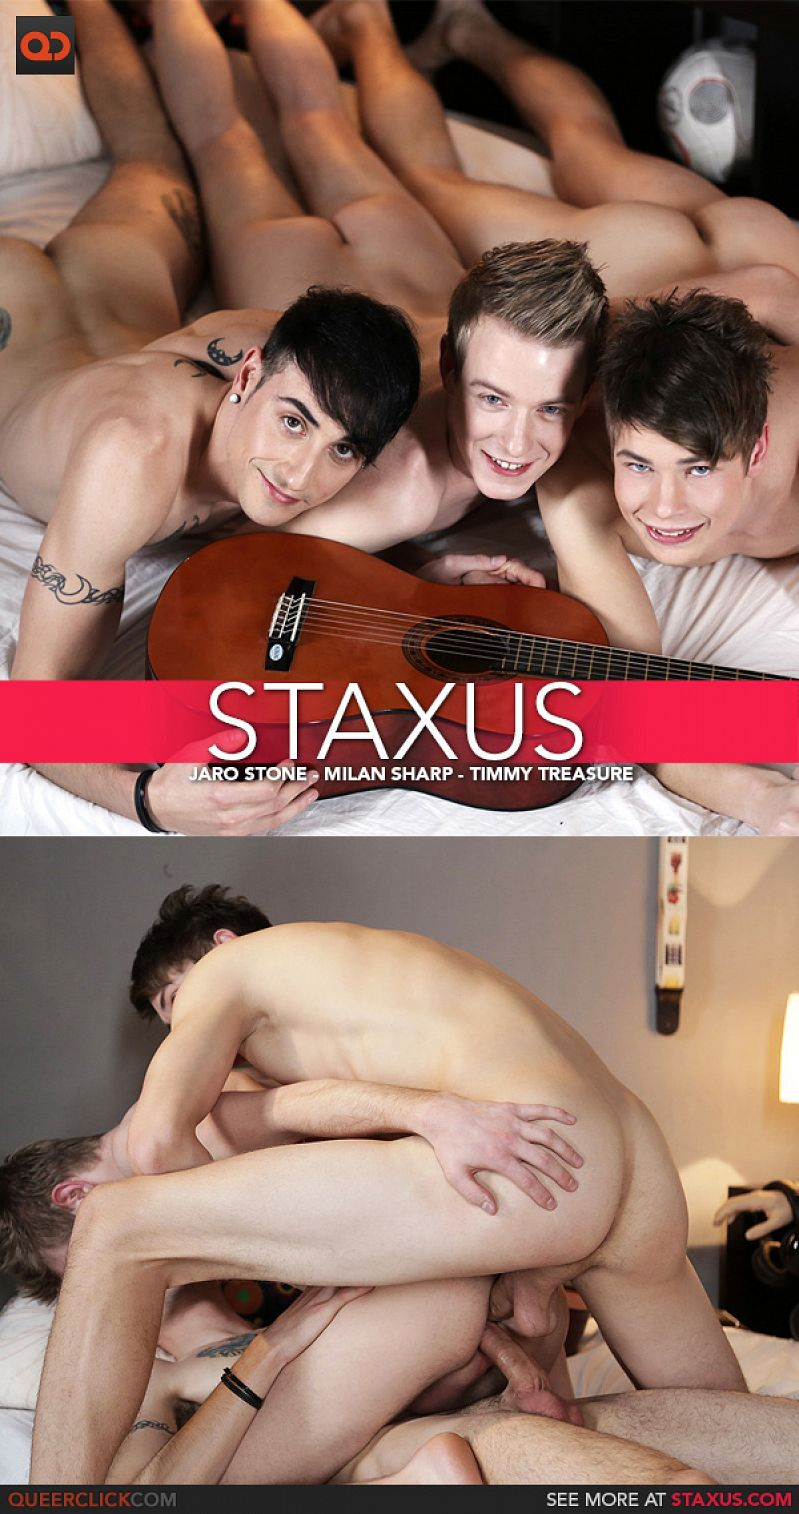 Staxus – Jaro Stone, Milan Sharp and Timmy Treasure